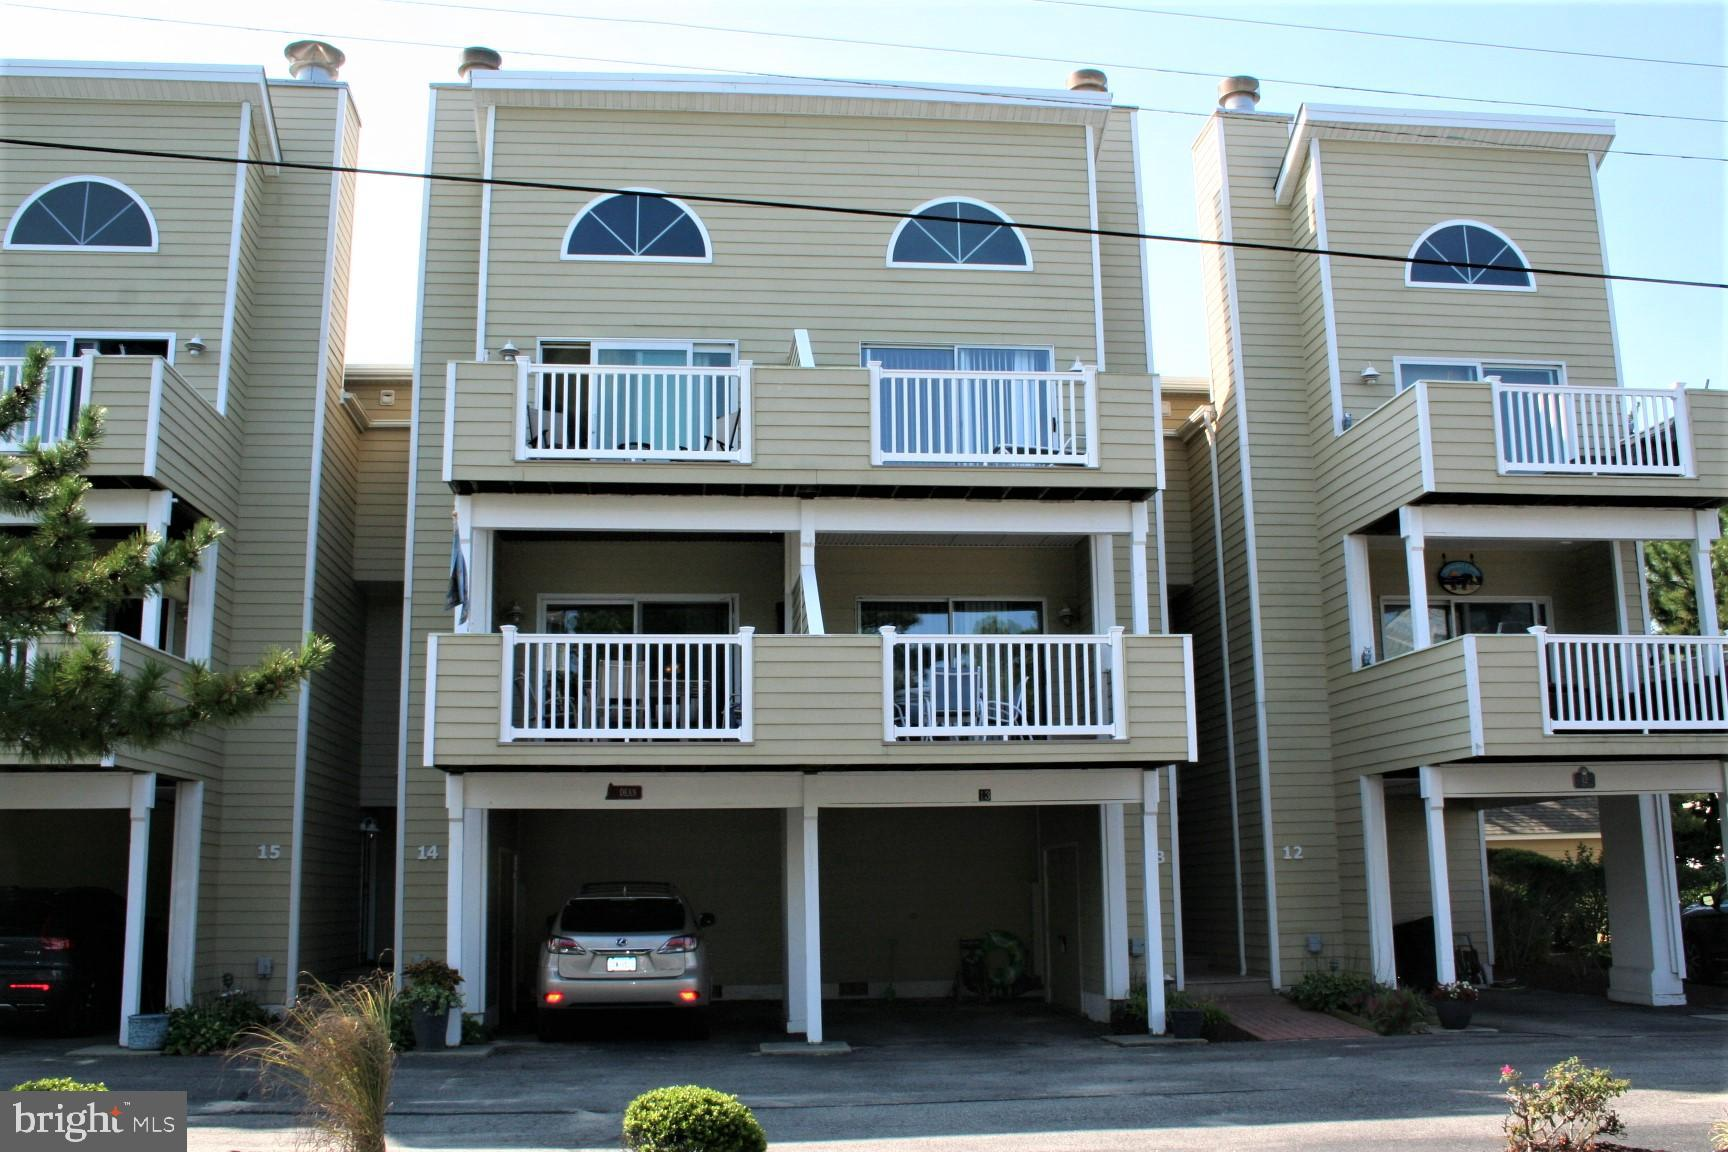 Popular Admirals Bridge unit with 3 Br. and 3.5 Ba. located in the middle of the block on the ocean side of the highway.  Community pool (for the 26 units of A.B.) nice large open decks, wood burning fireplace and all of the amenities one could want. Great view of the ocean from the decks, one off the living floor and one off the main Br. upper most level.   Walk in closet with build in locking safe in the main br.  These are excellent rental units where tenants like to return year after year.  Easy to show, no rentals now.